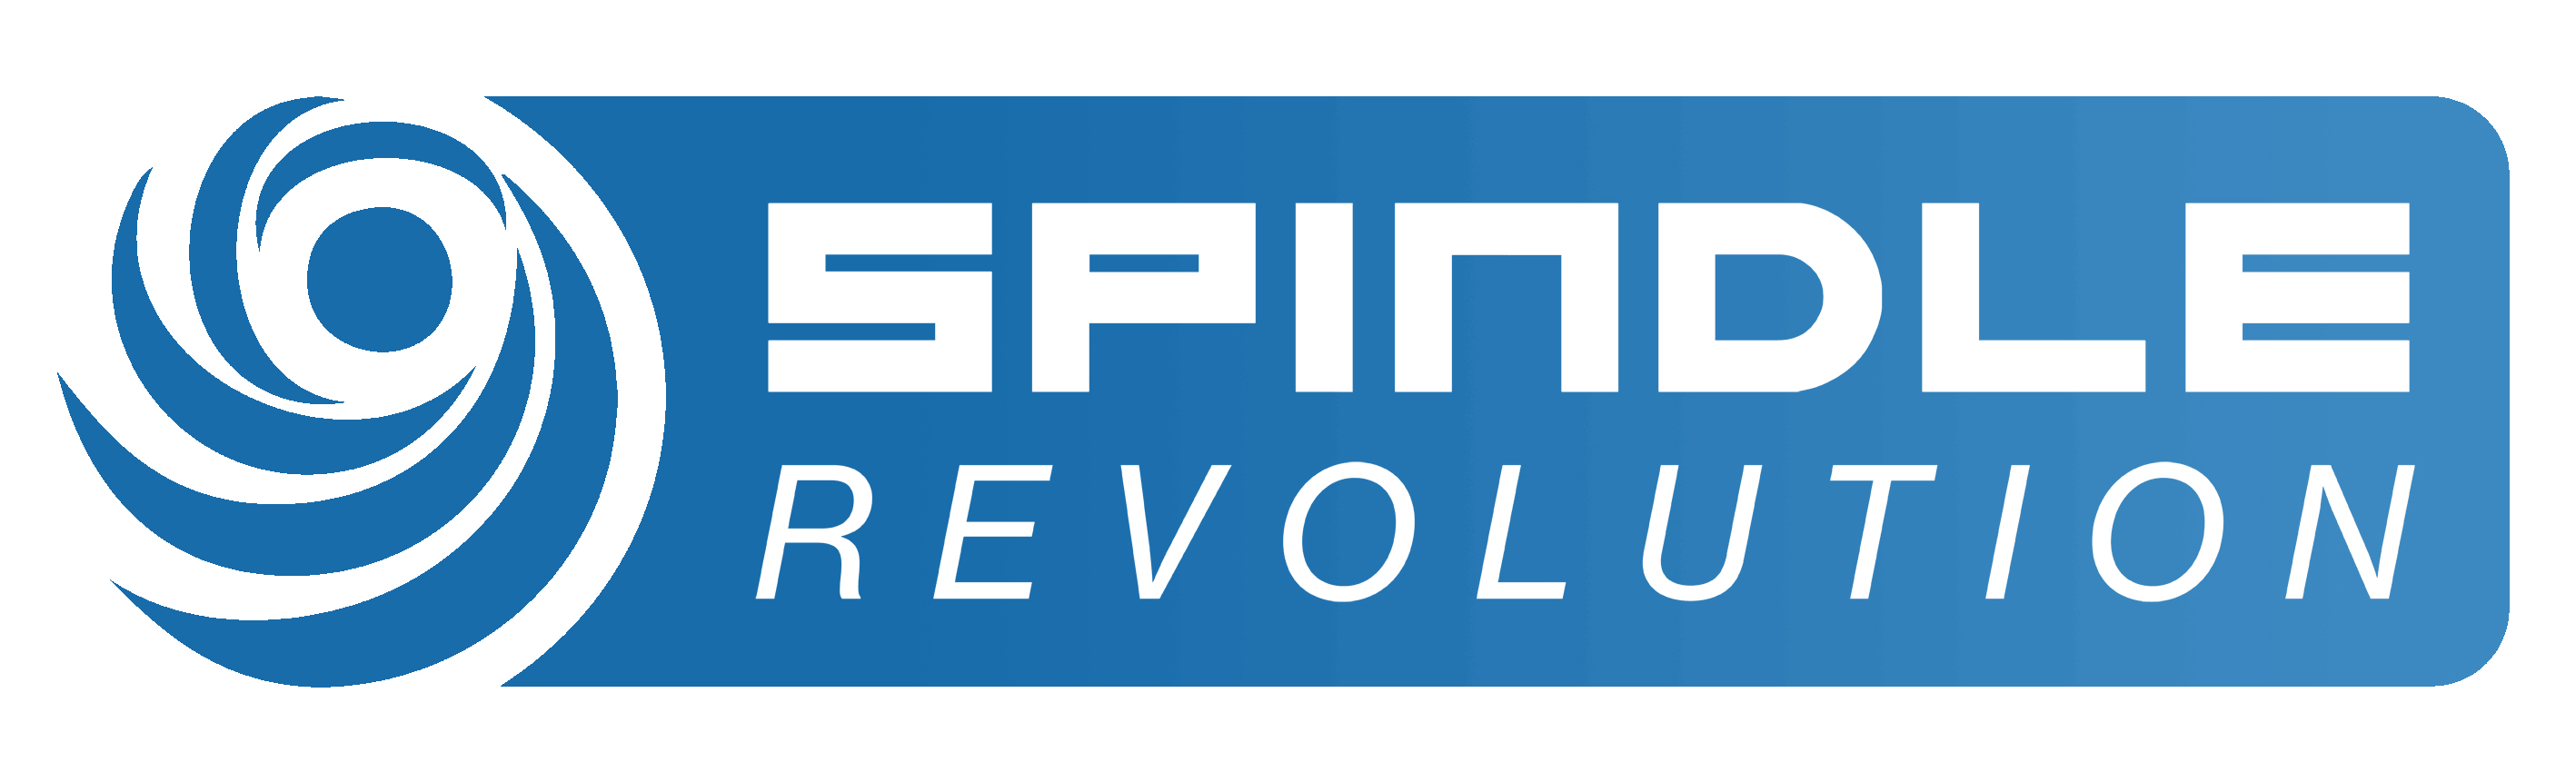 Spindle Revolution logo